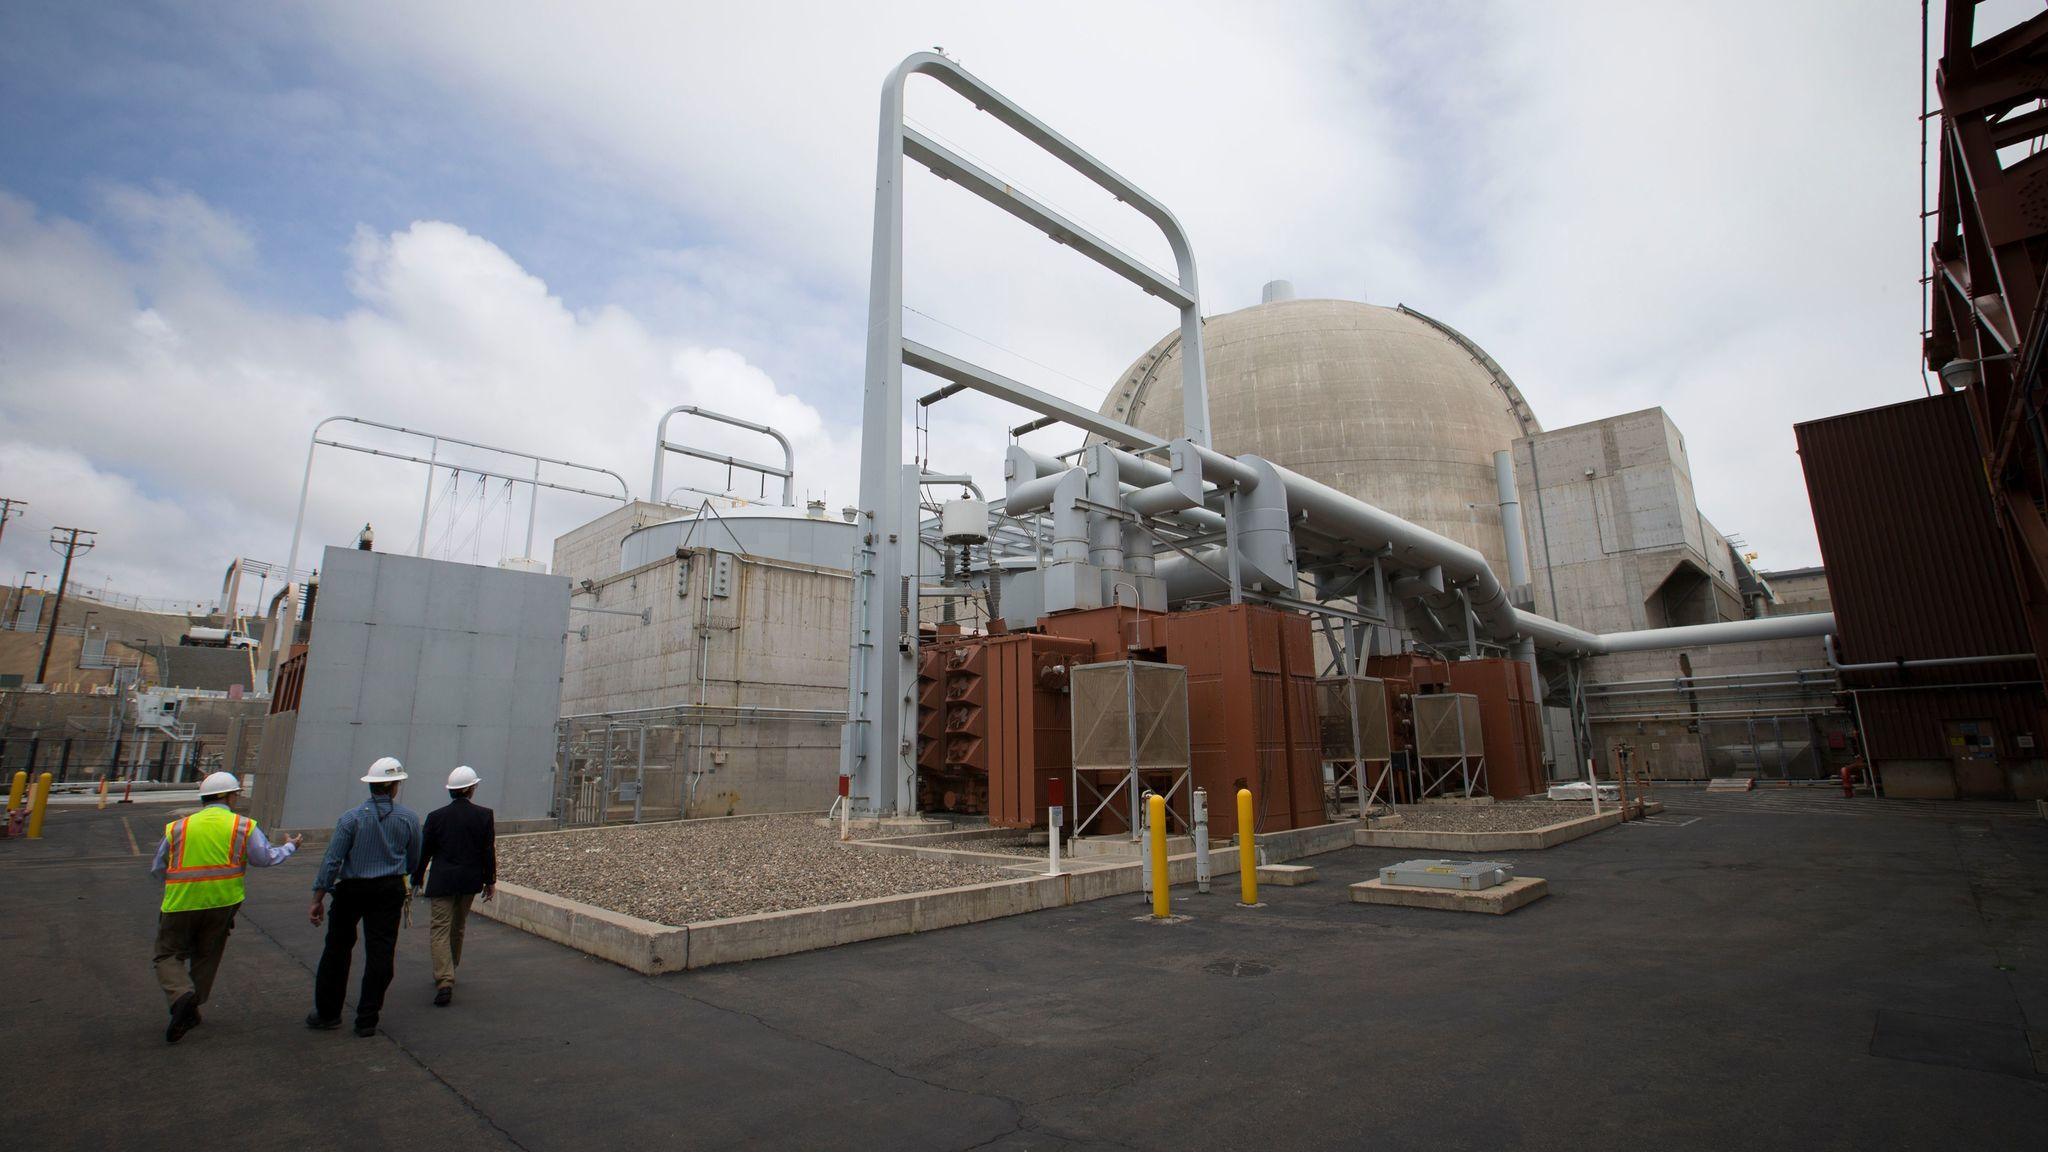 Thomas Palmisano, left, decommissioning and chief nuclear officer, and Lou Bosch, center, Southern California Edison plant manager, lead a tour near the electricity switch yard where two-thirds of the used nuclear fuel is in wet storage.